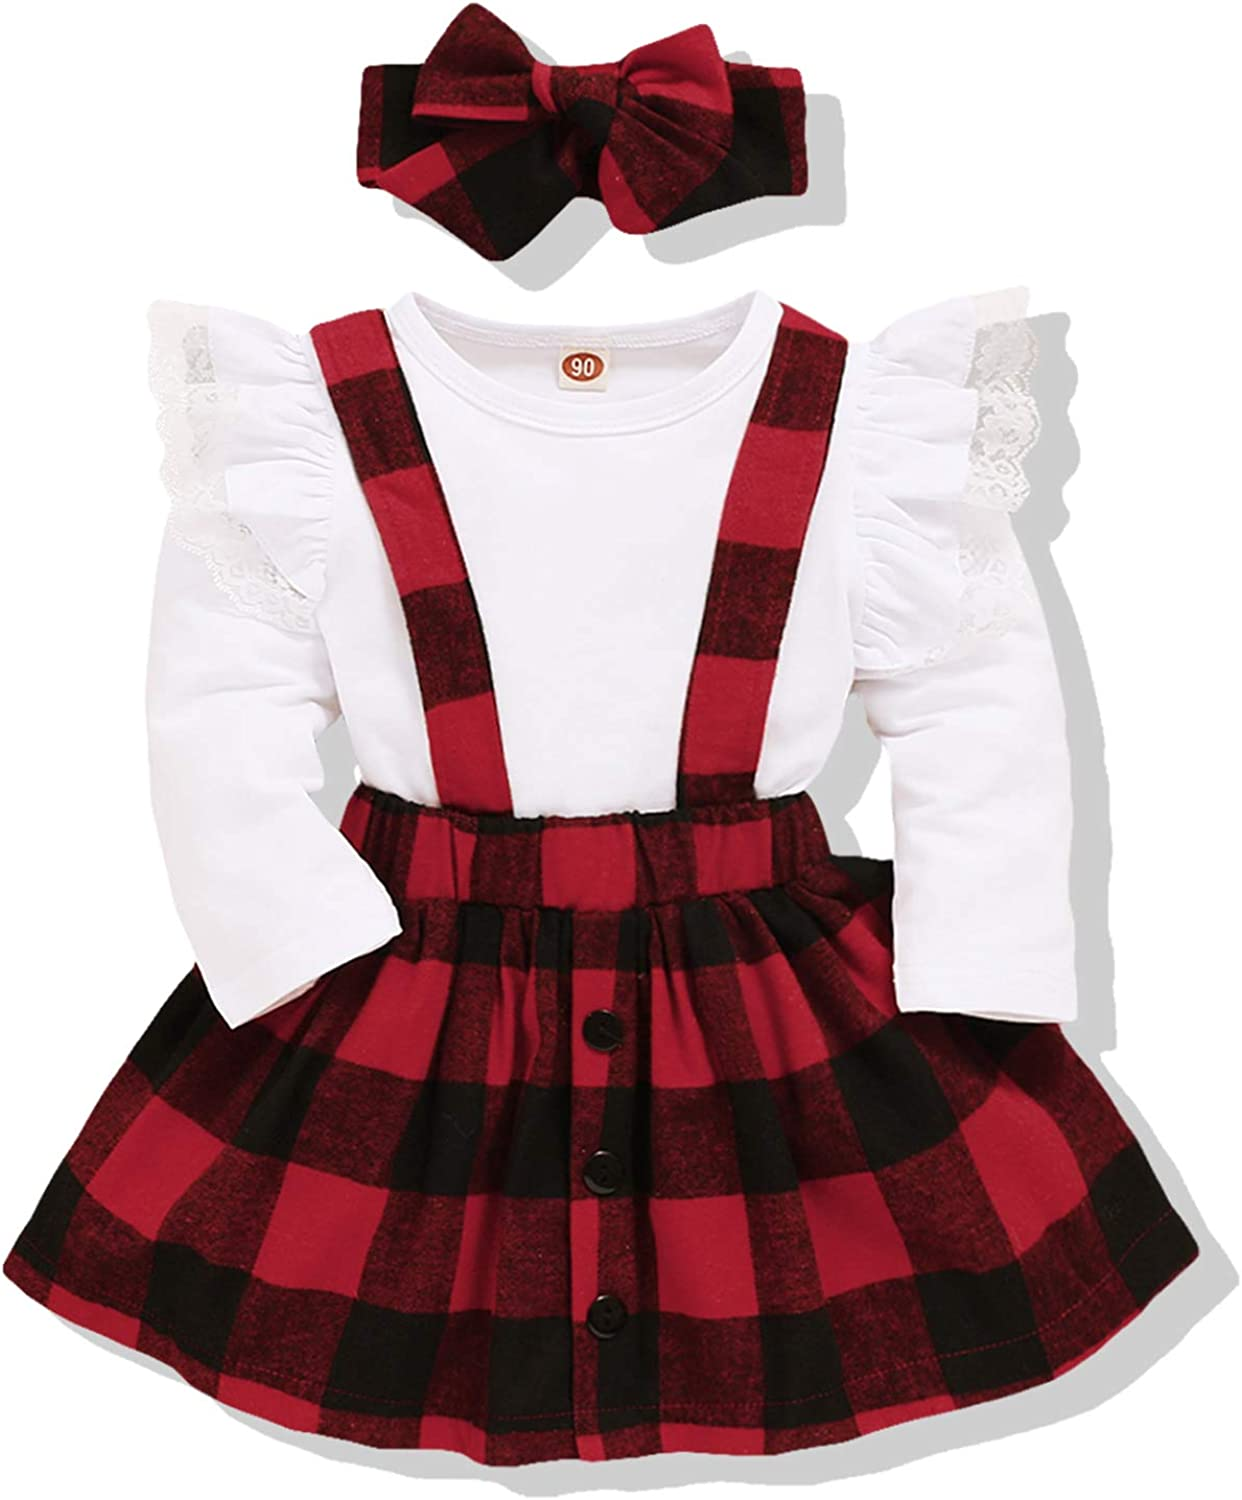 Toddler Baby Girls Long Sleeve T-Shirt Tops + Plaid Suspender Skirt Outfits Set